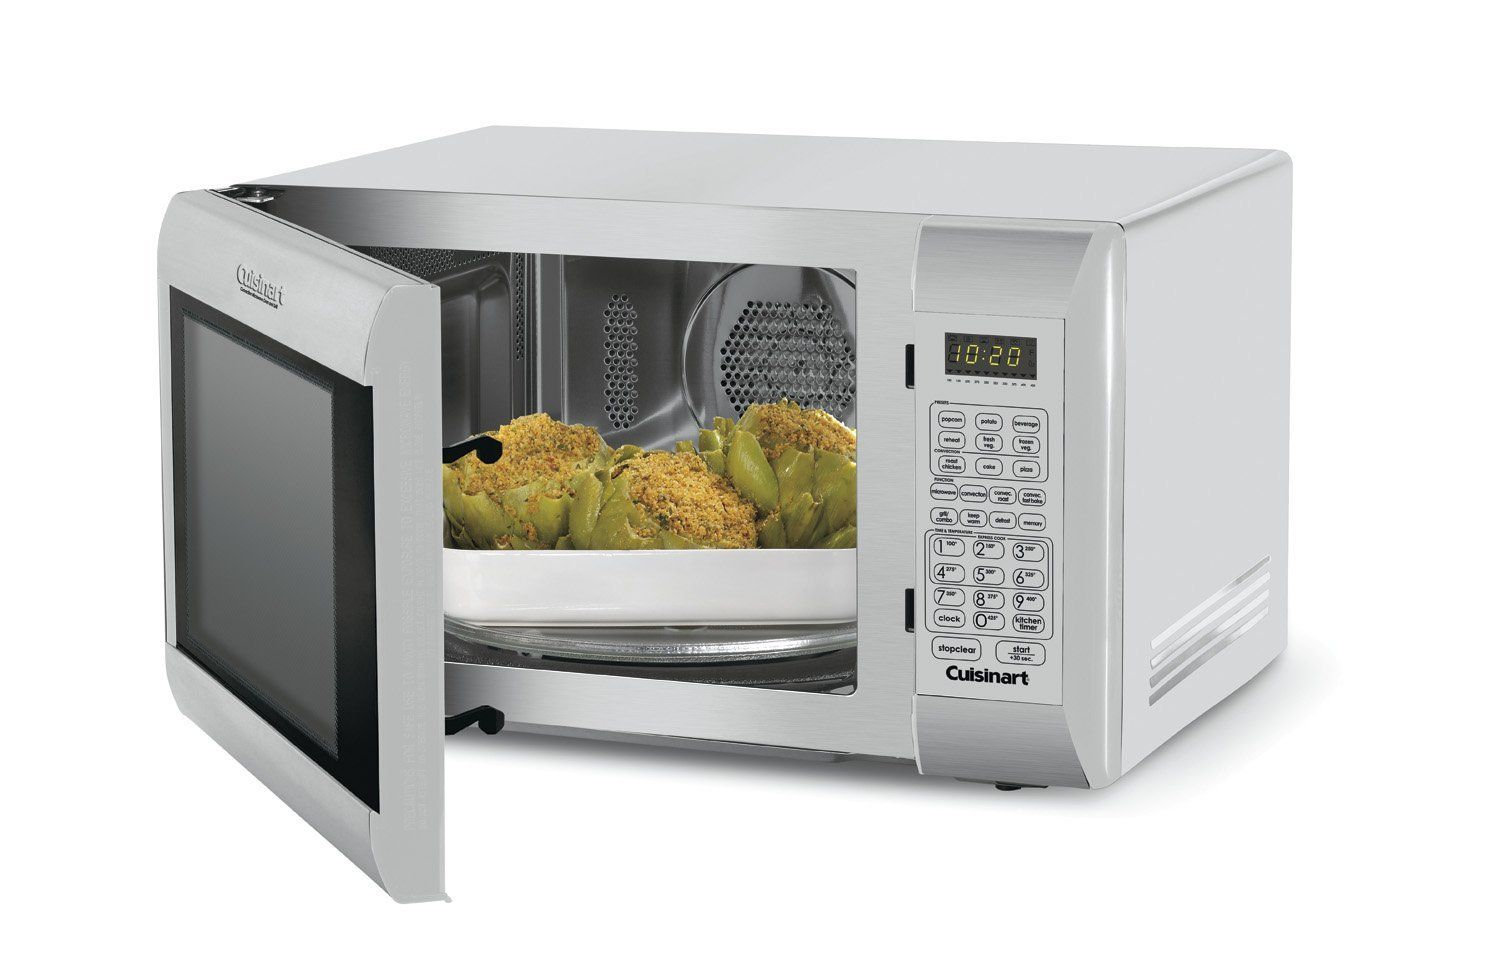 Replace Rv Microwave With Convection Oven